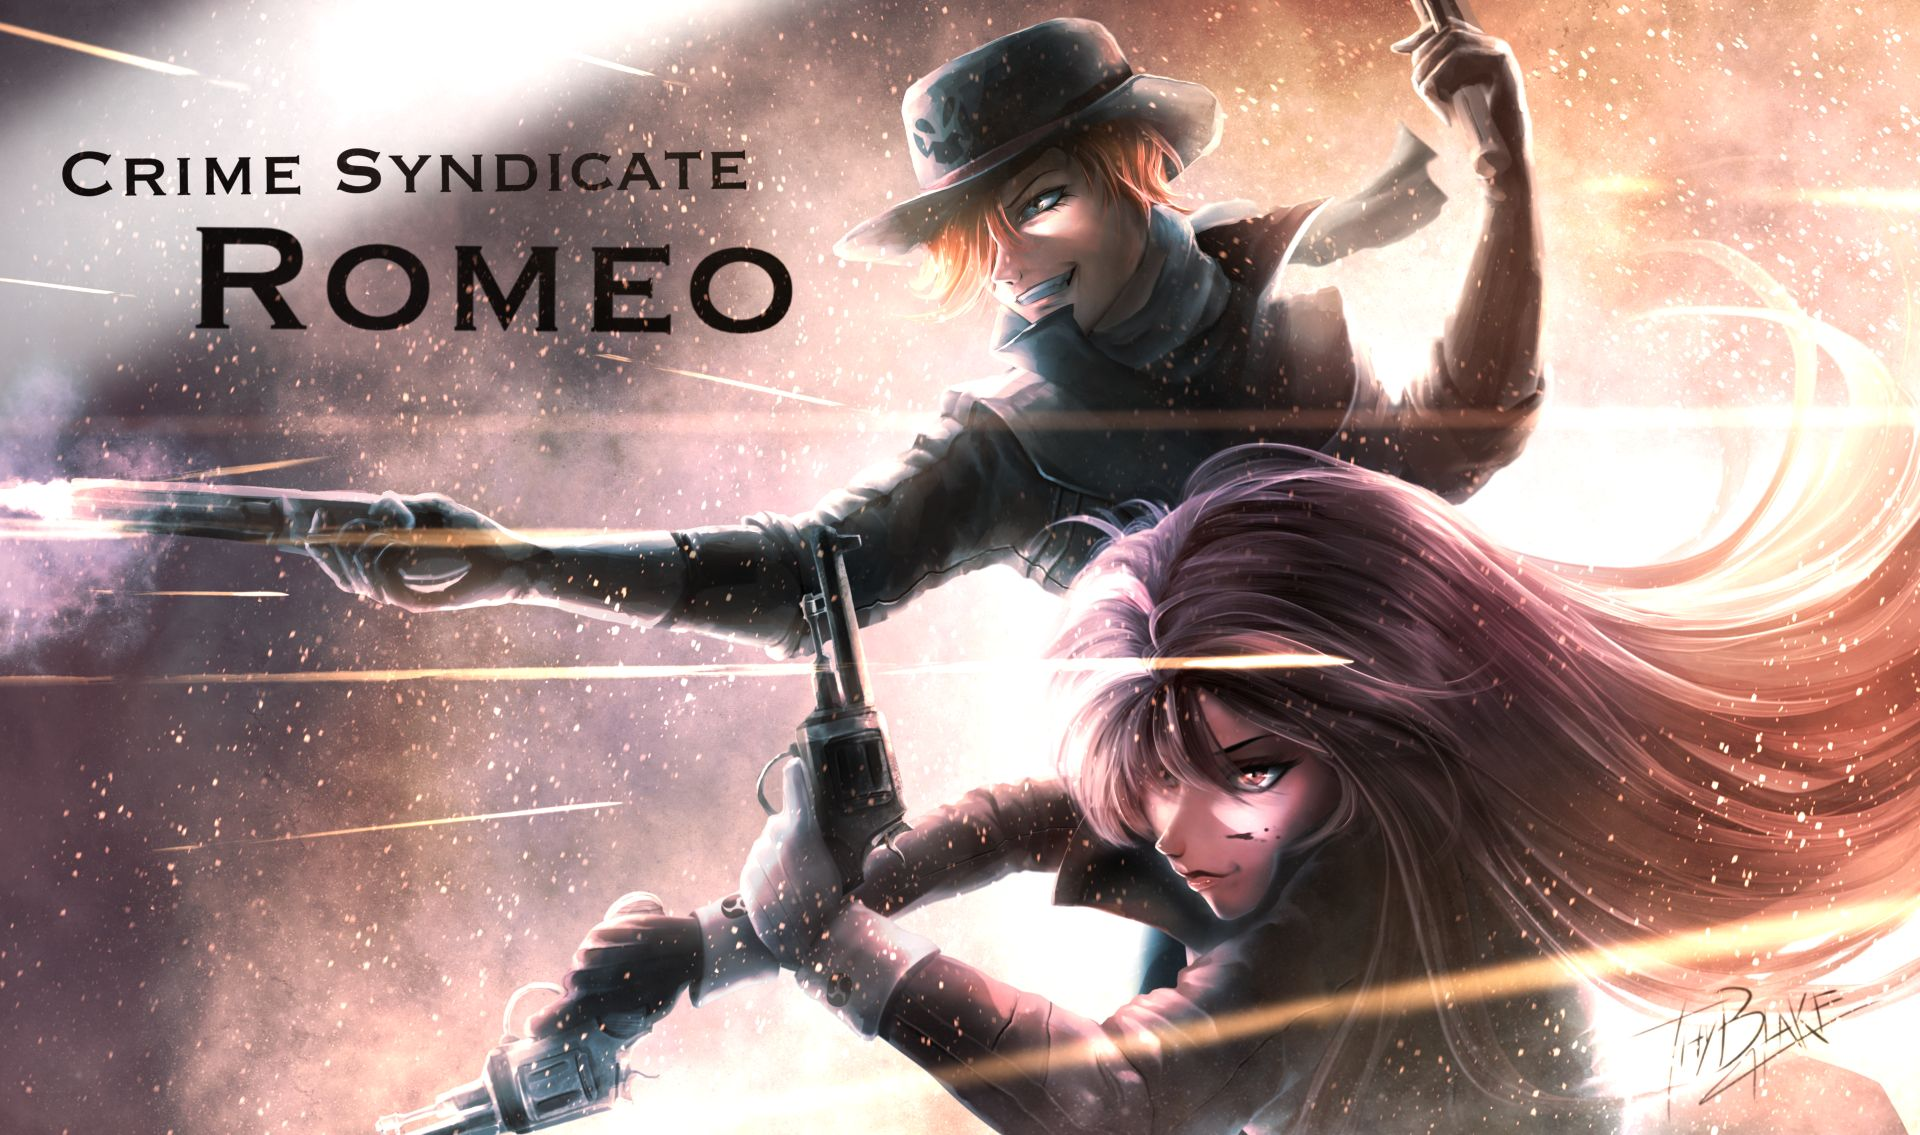 rwby__ww2_nations__crime_syndicate_romeo_by_thyblake_dcl2y8b.jpg